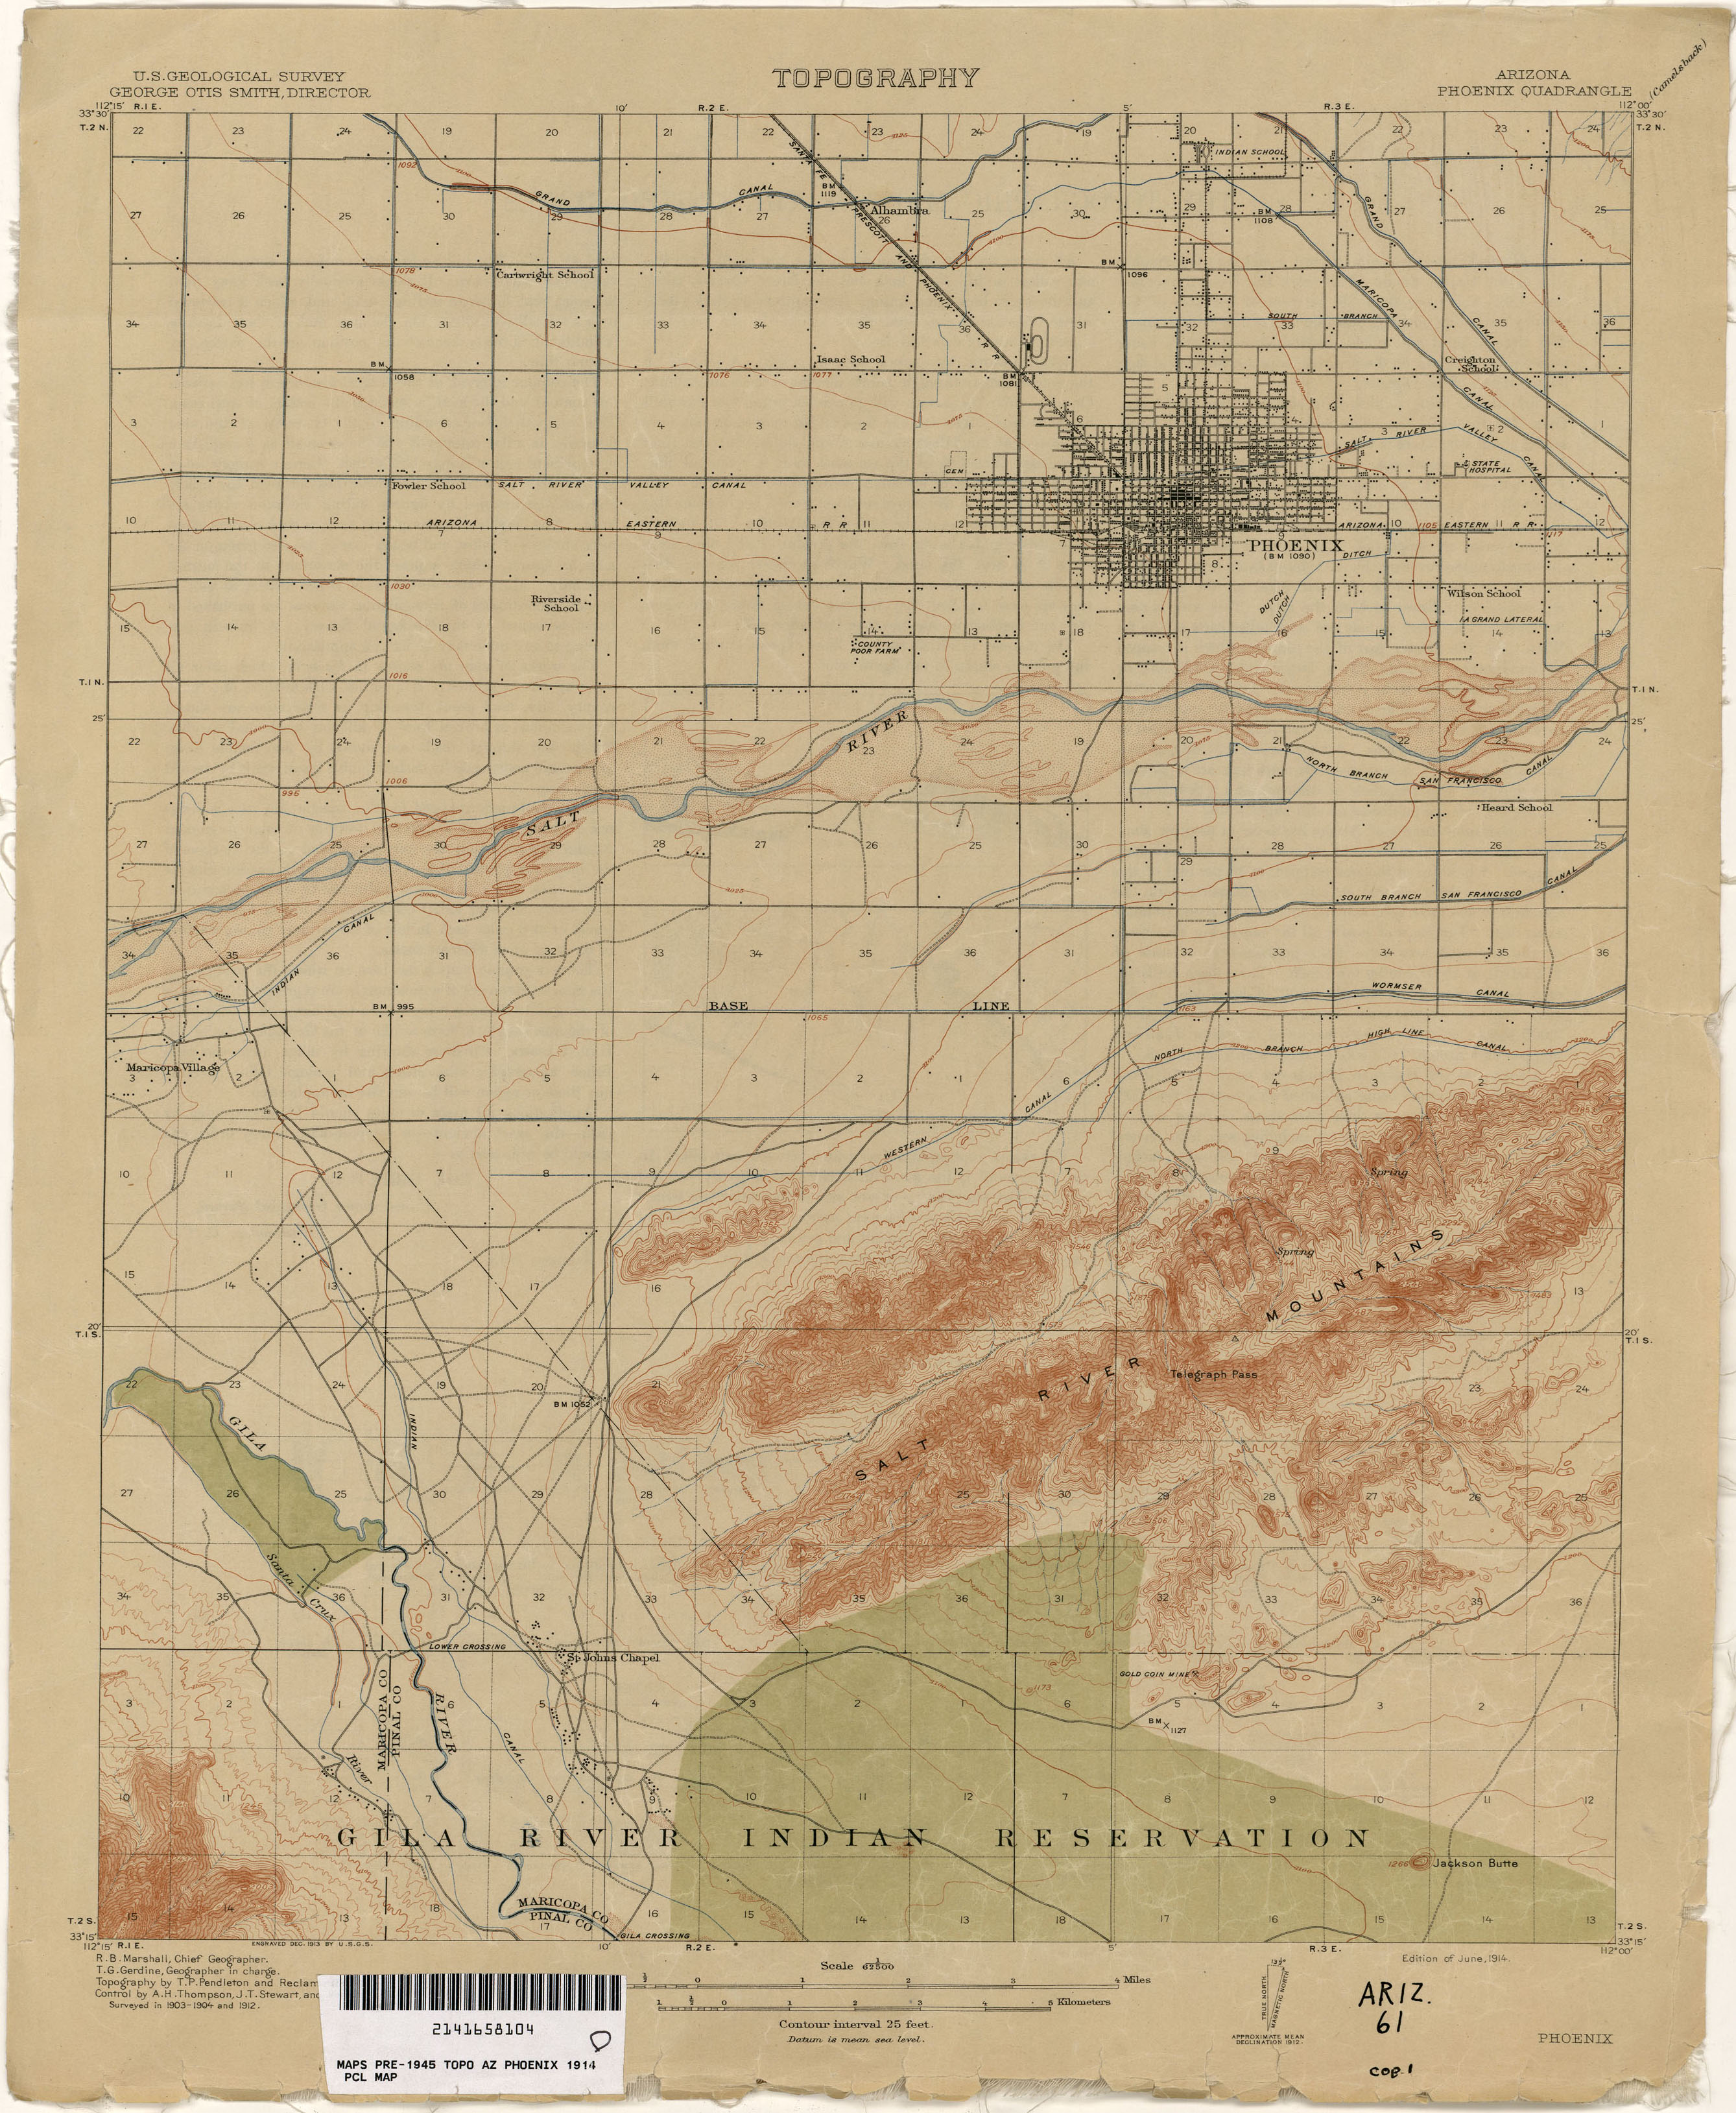 Arizona Historical Topographic Maps - Perry-Castañeda Map ...